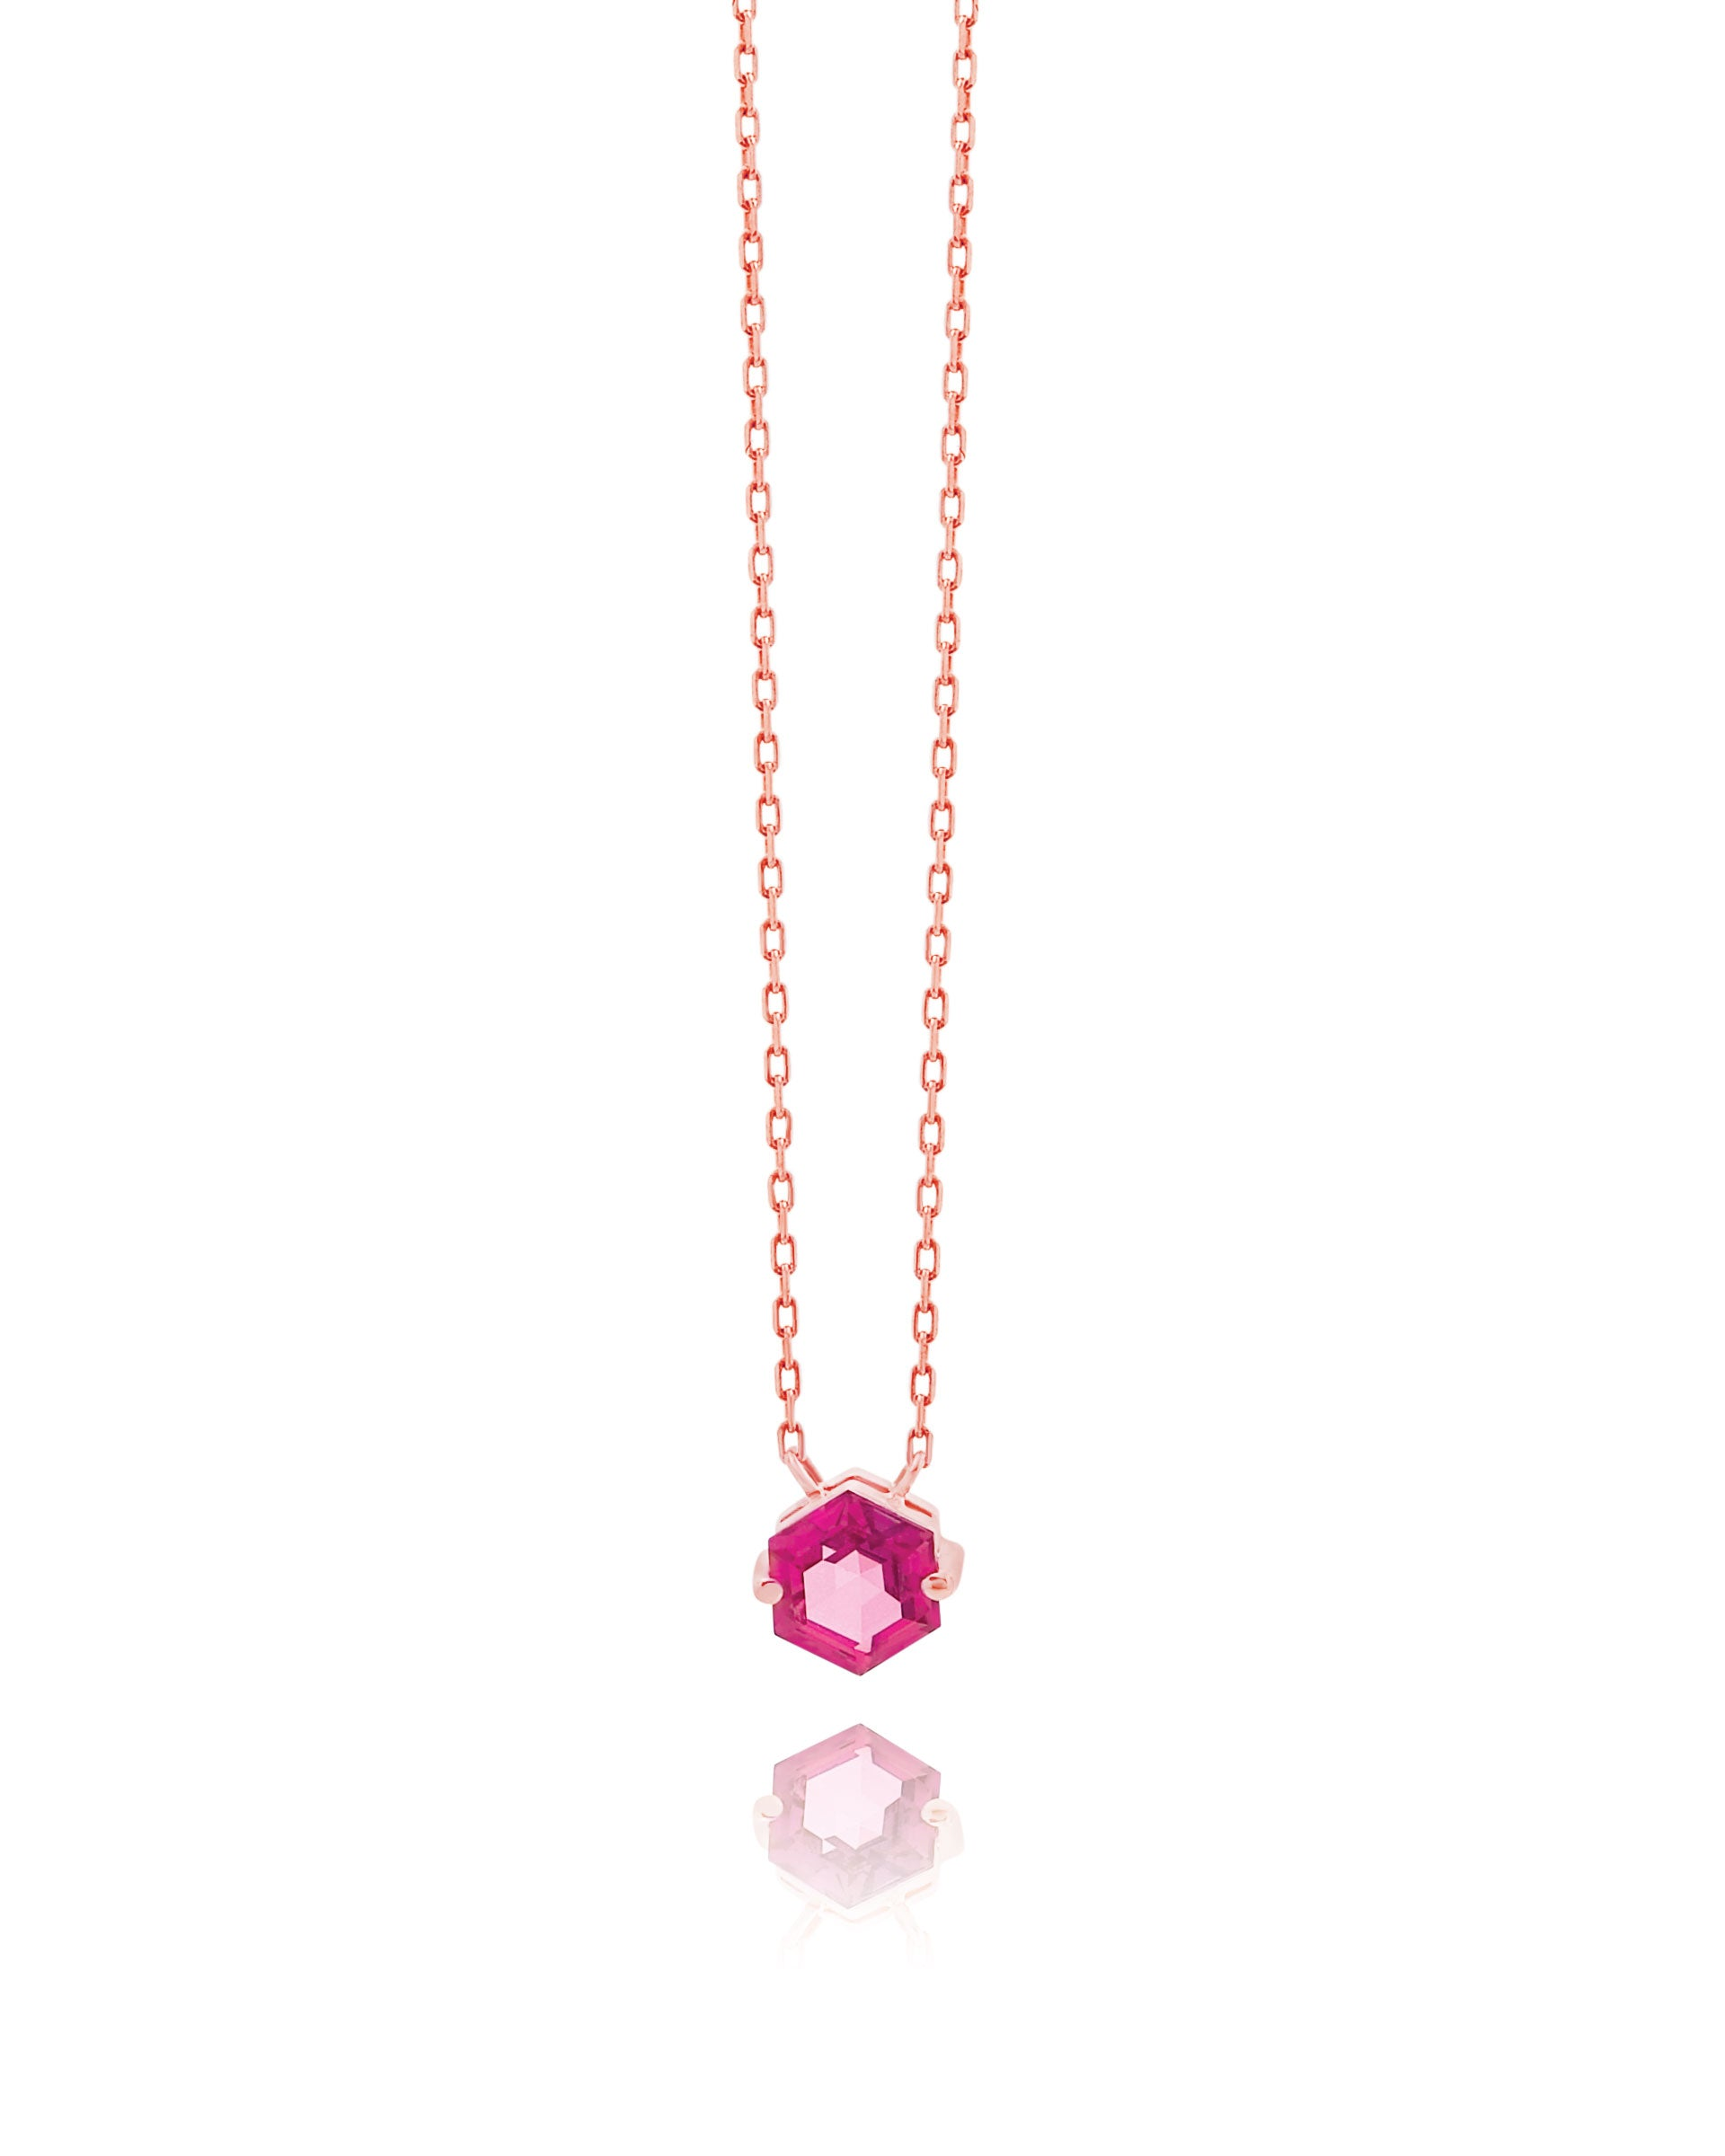 14K ROSE GOLD PETITE PINK TOPAZ HEXAGON NECKLACE